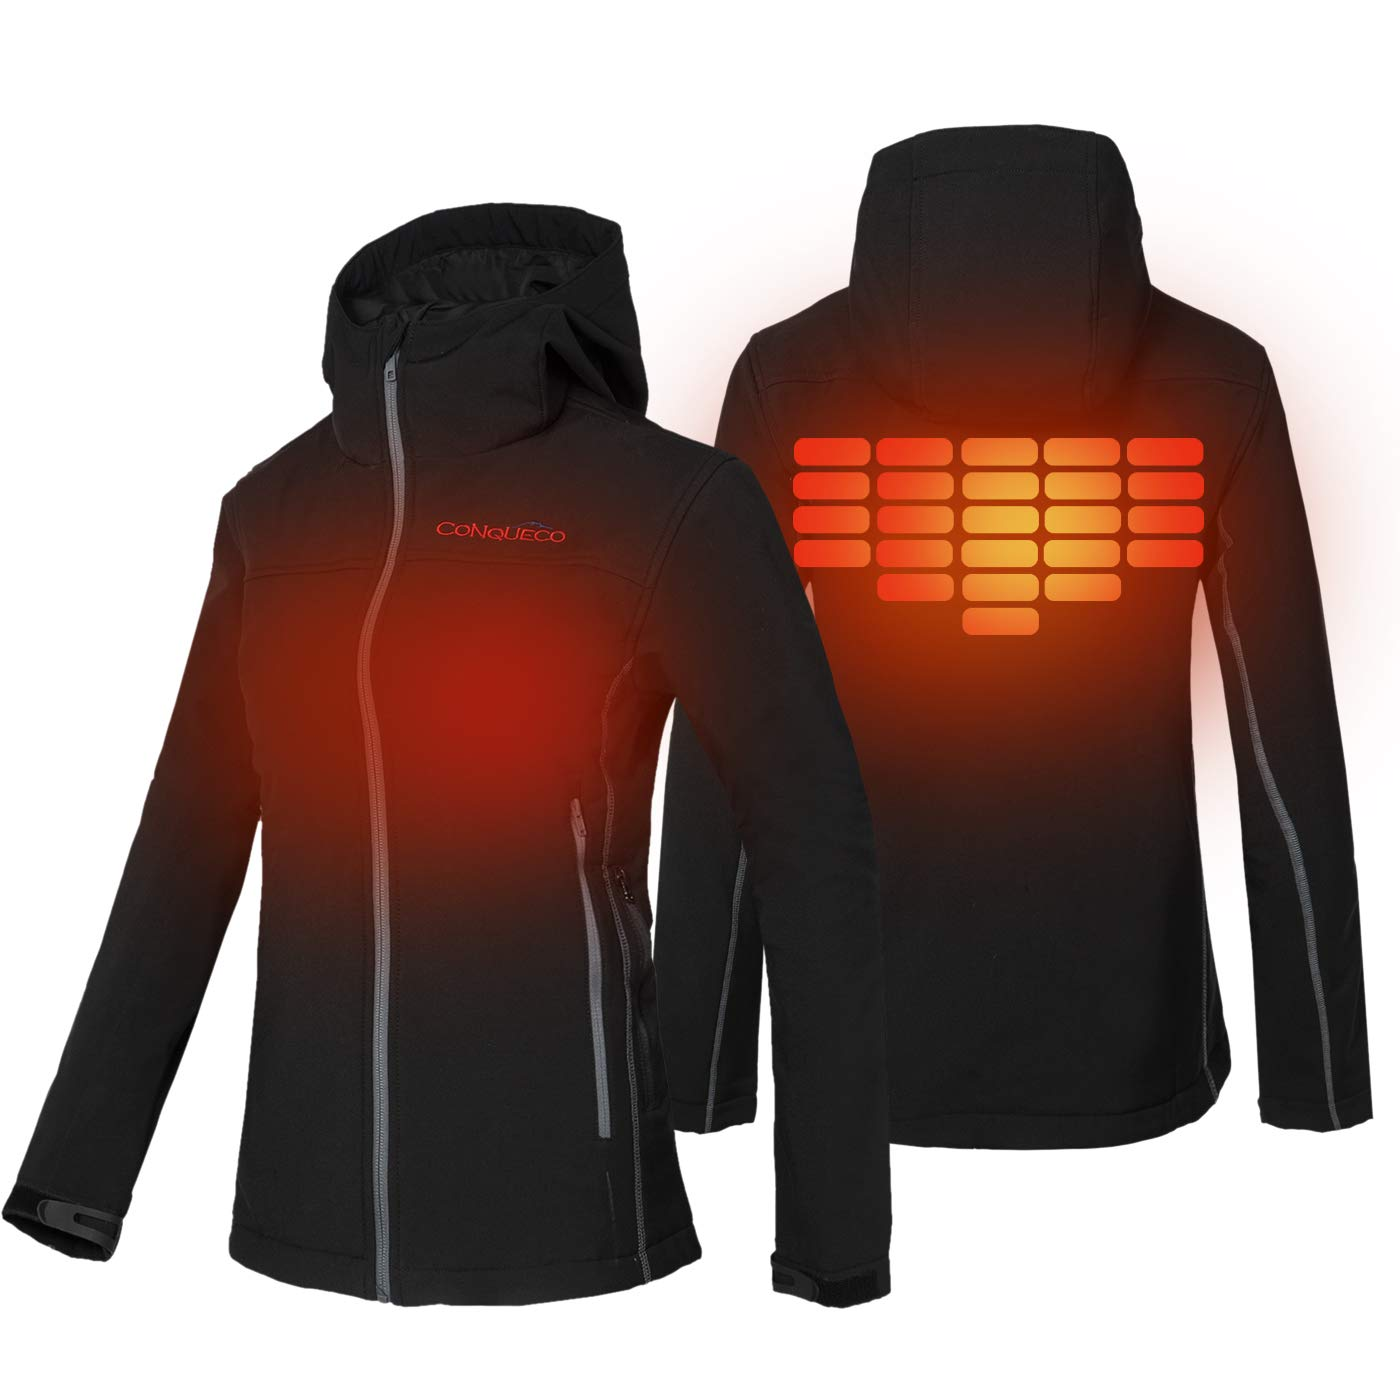 Womens Heated Clothing >> Conqueco Women S Heated Jacket Slim Fit Electric Hoodie Jacket With Battery Pack